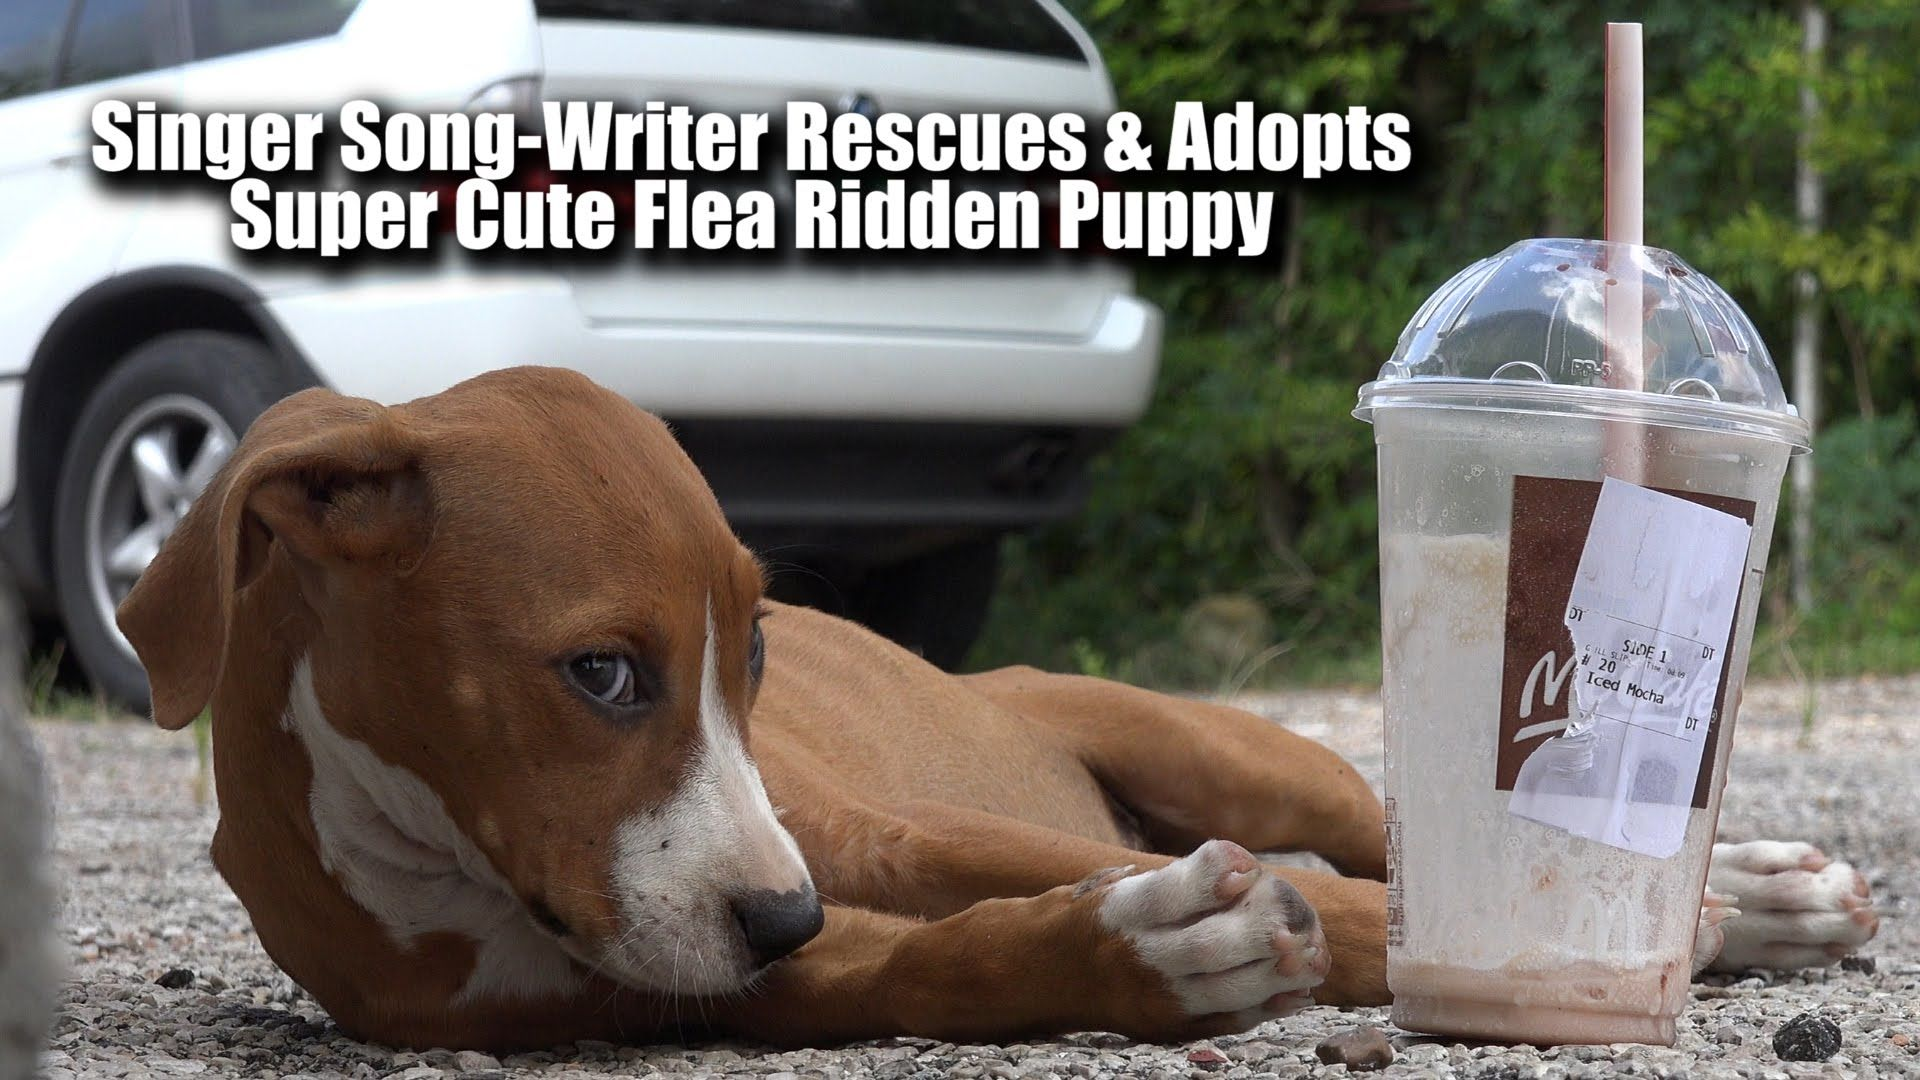 Singer Song Writer Rescues Flea Ridden Cute Stray Puppy Filming